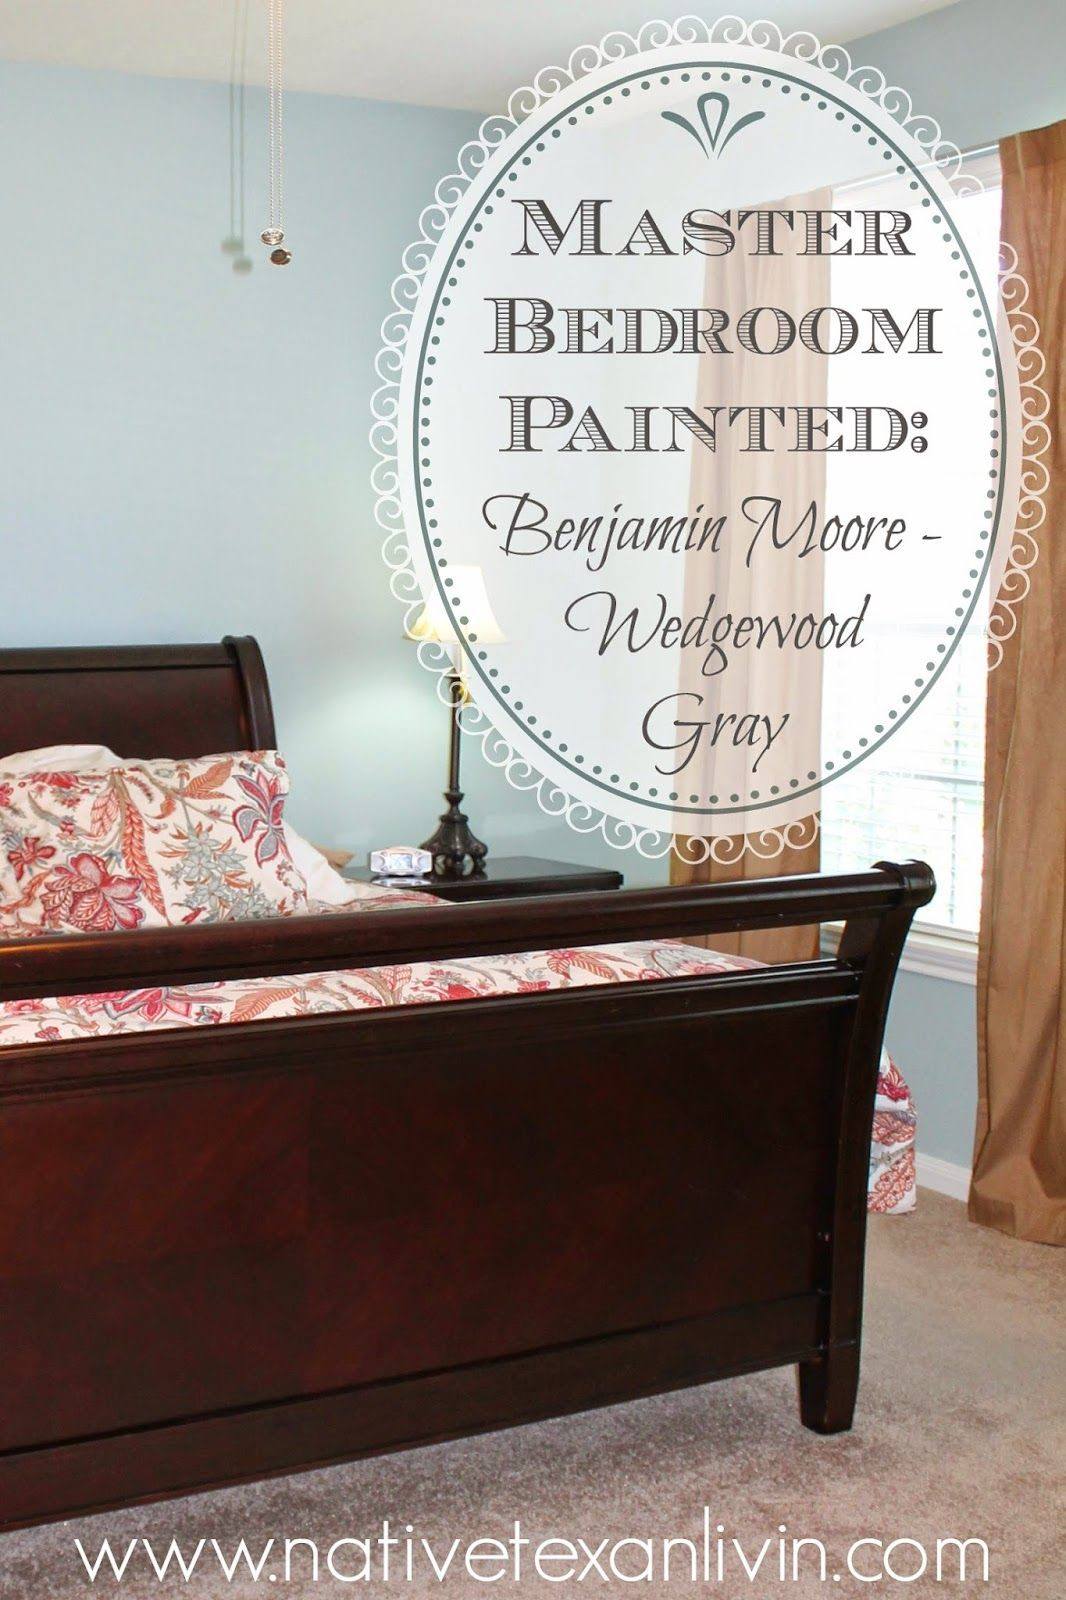 remarkable wedgewood gray bedroom | Native Texan Livin': Master Bedroom: New Paint {Benjamin ...